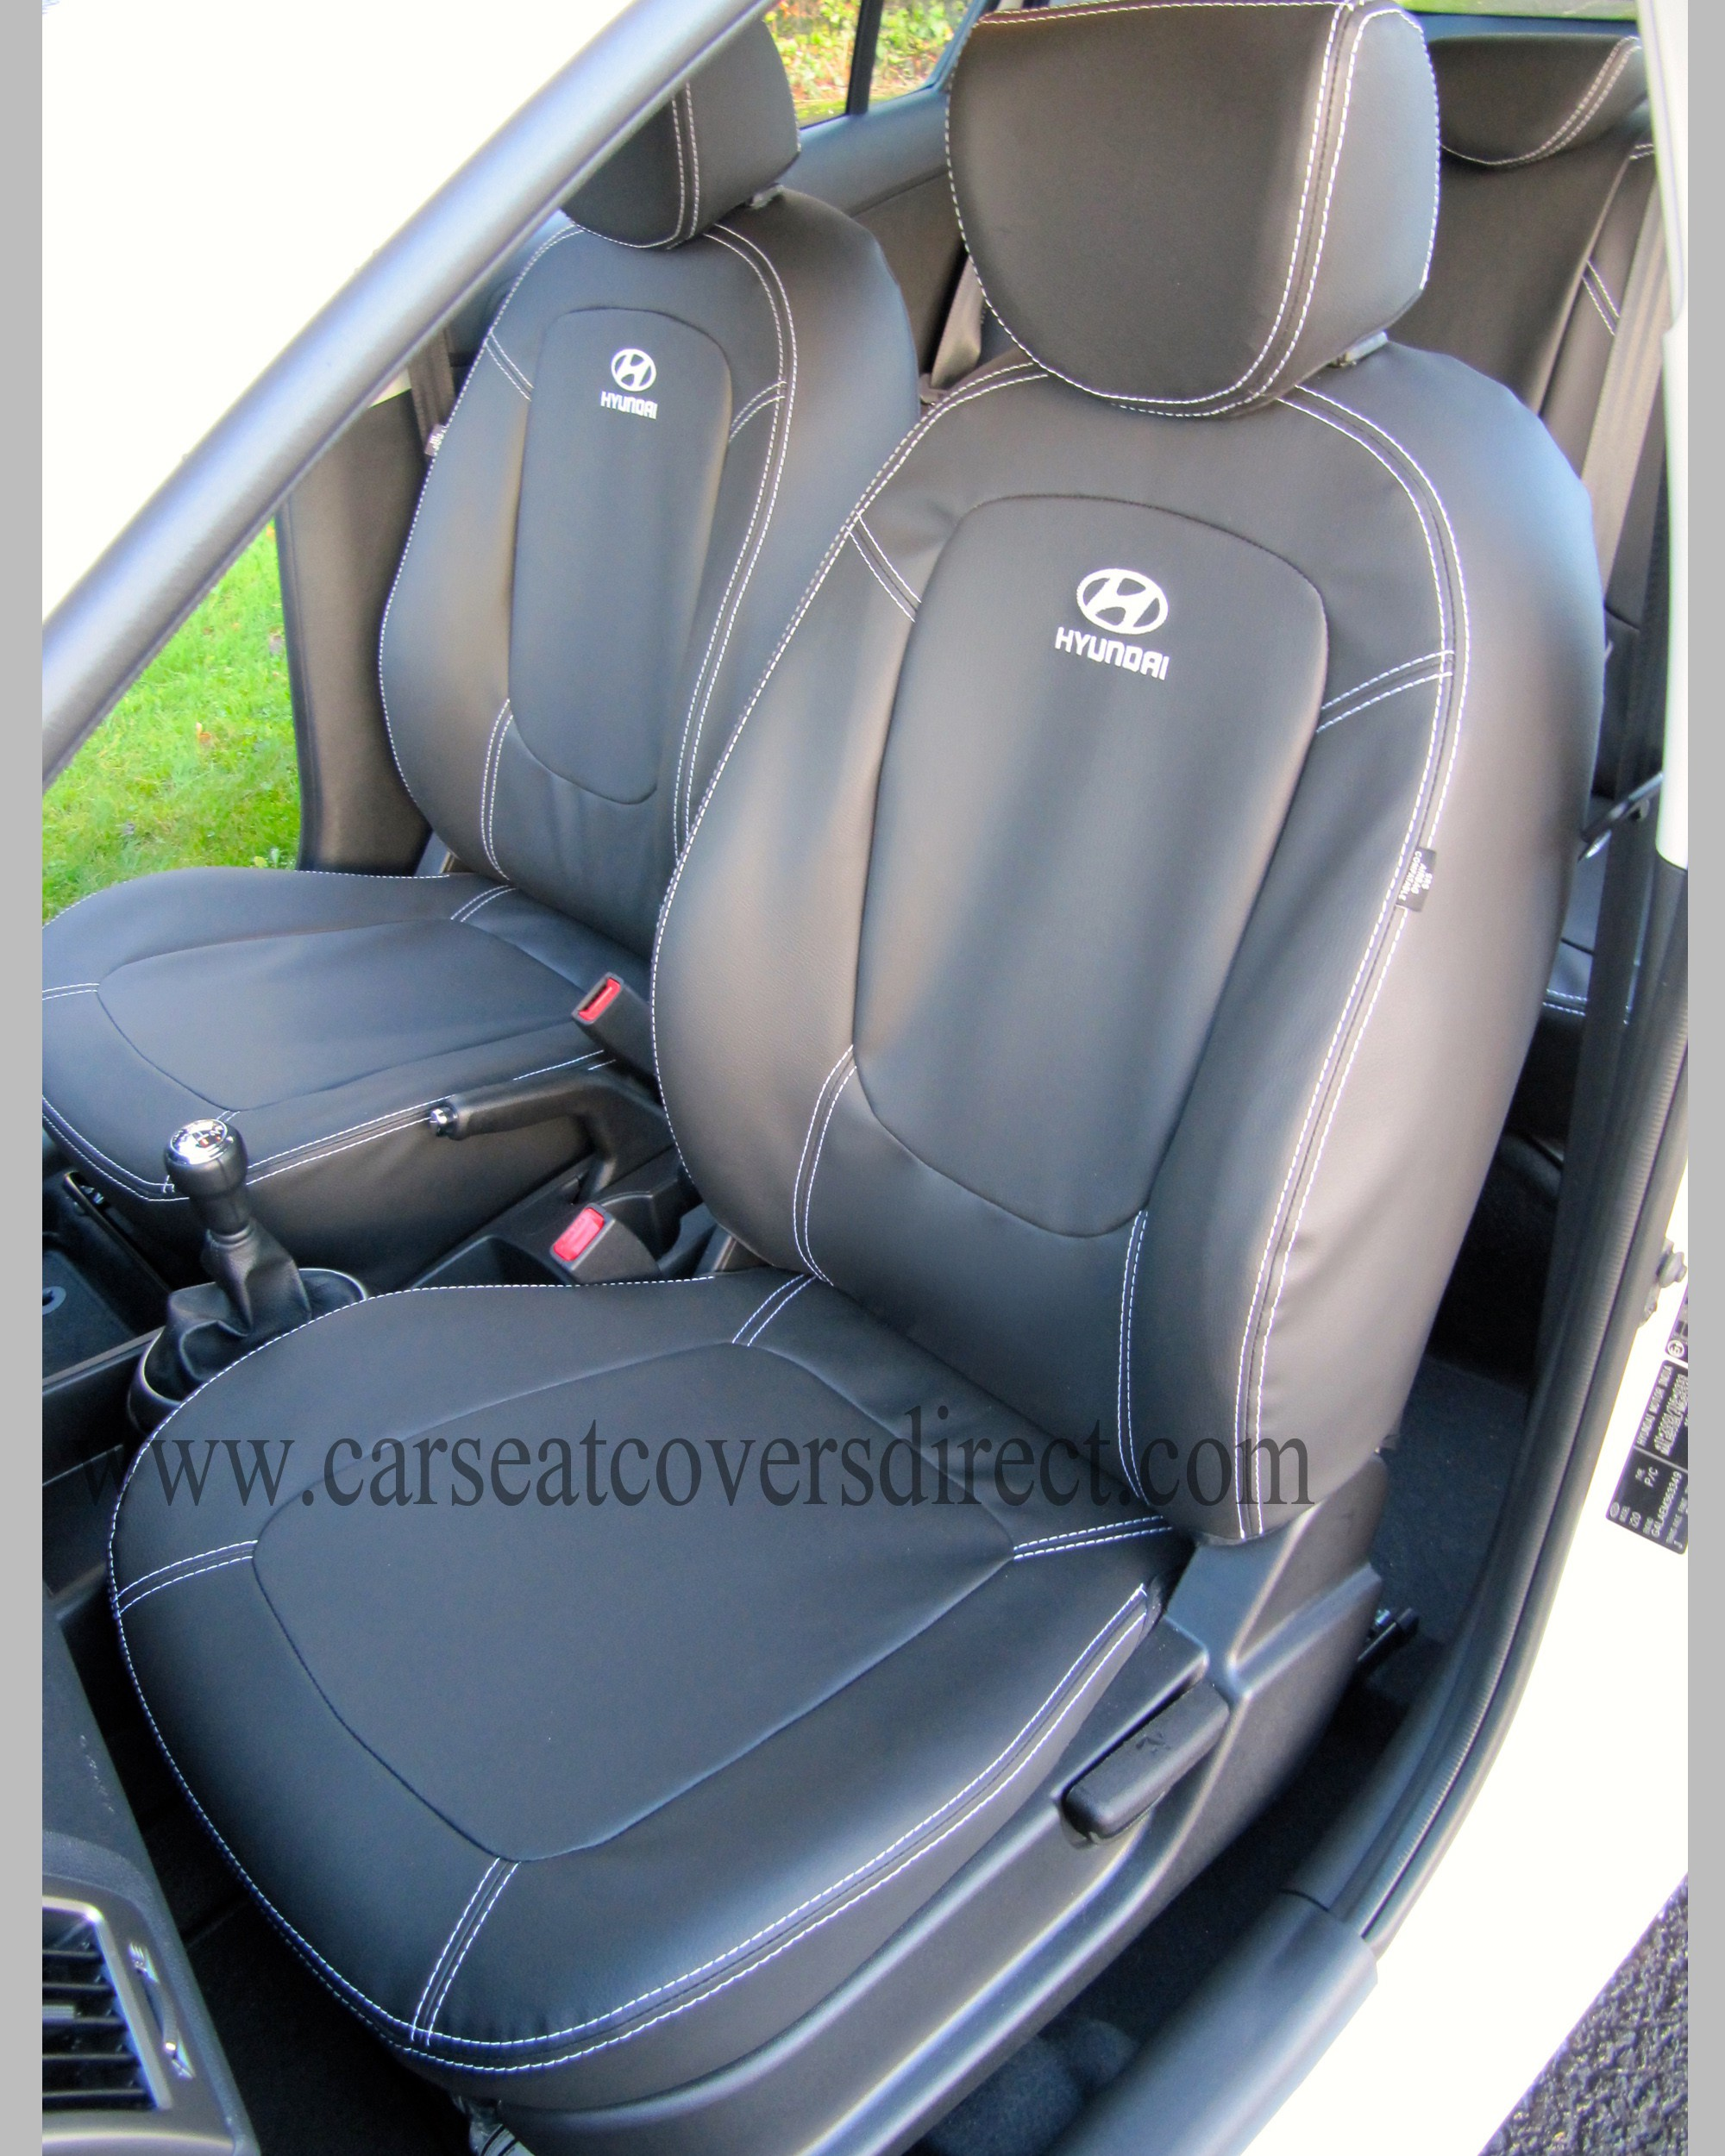 HYUNDAI I20 seat covers